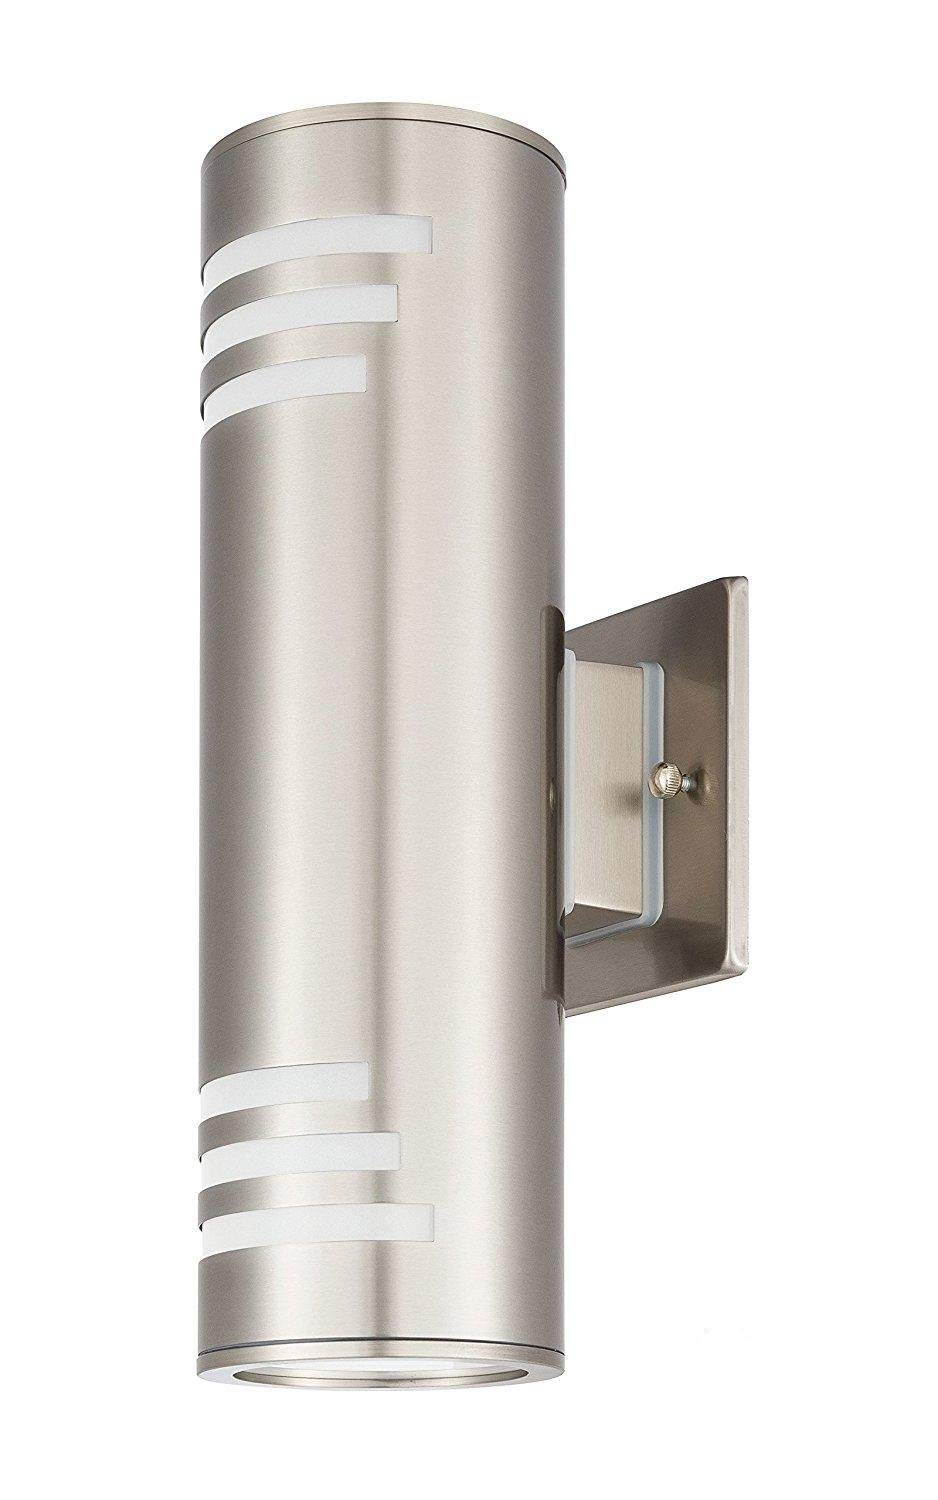 Outdoor Modern Wall Sconce by COOL CARE - Exterior Lighting and Contemporary Housing Décor - Waterproof Stainless Steel Flush Mount Cylinder Design - Up Down Light Fixture for Backyard, Patio (Silver)